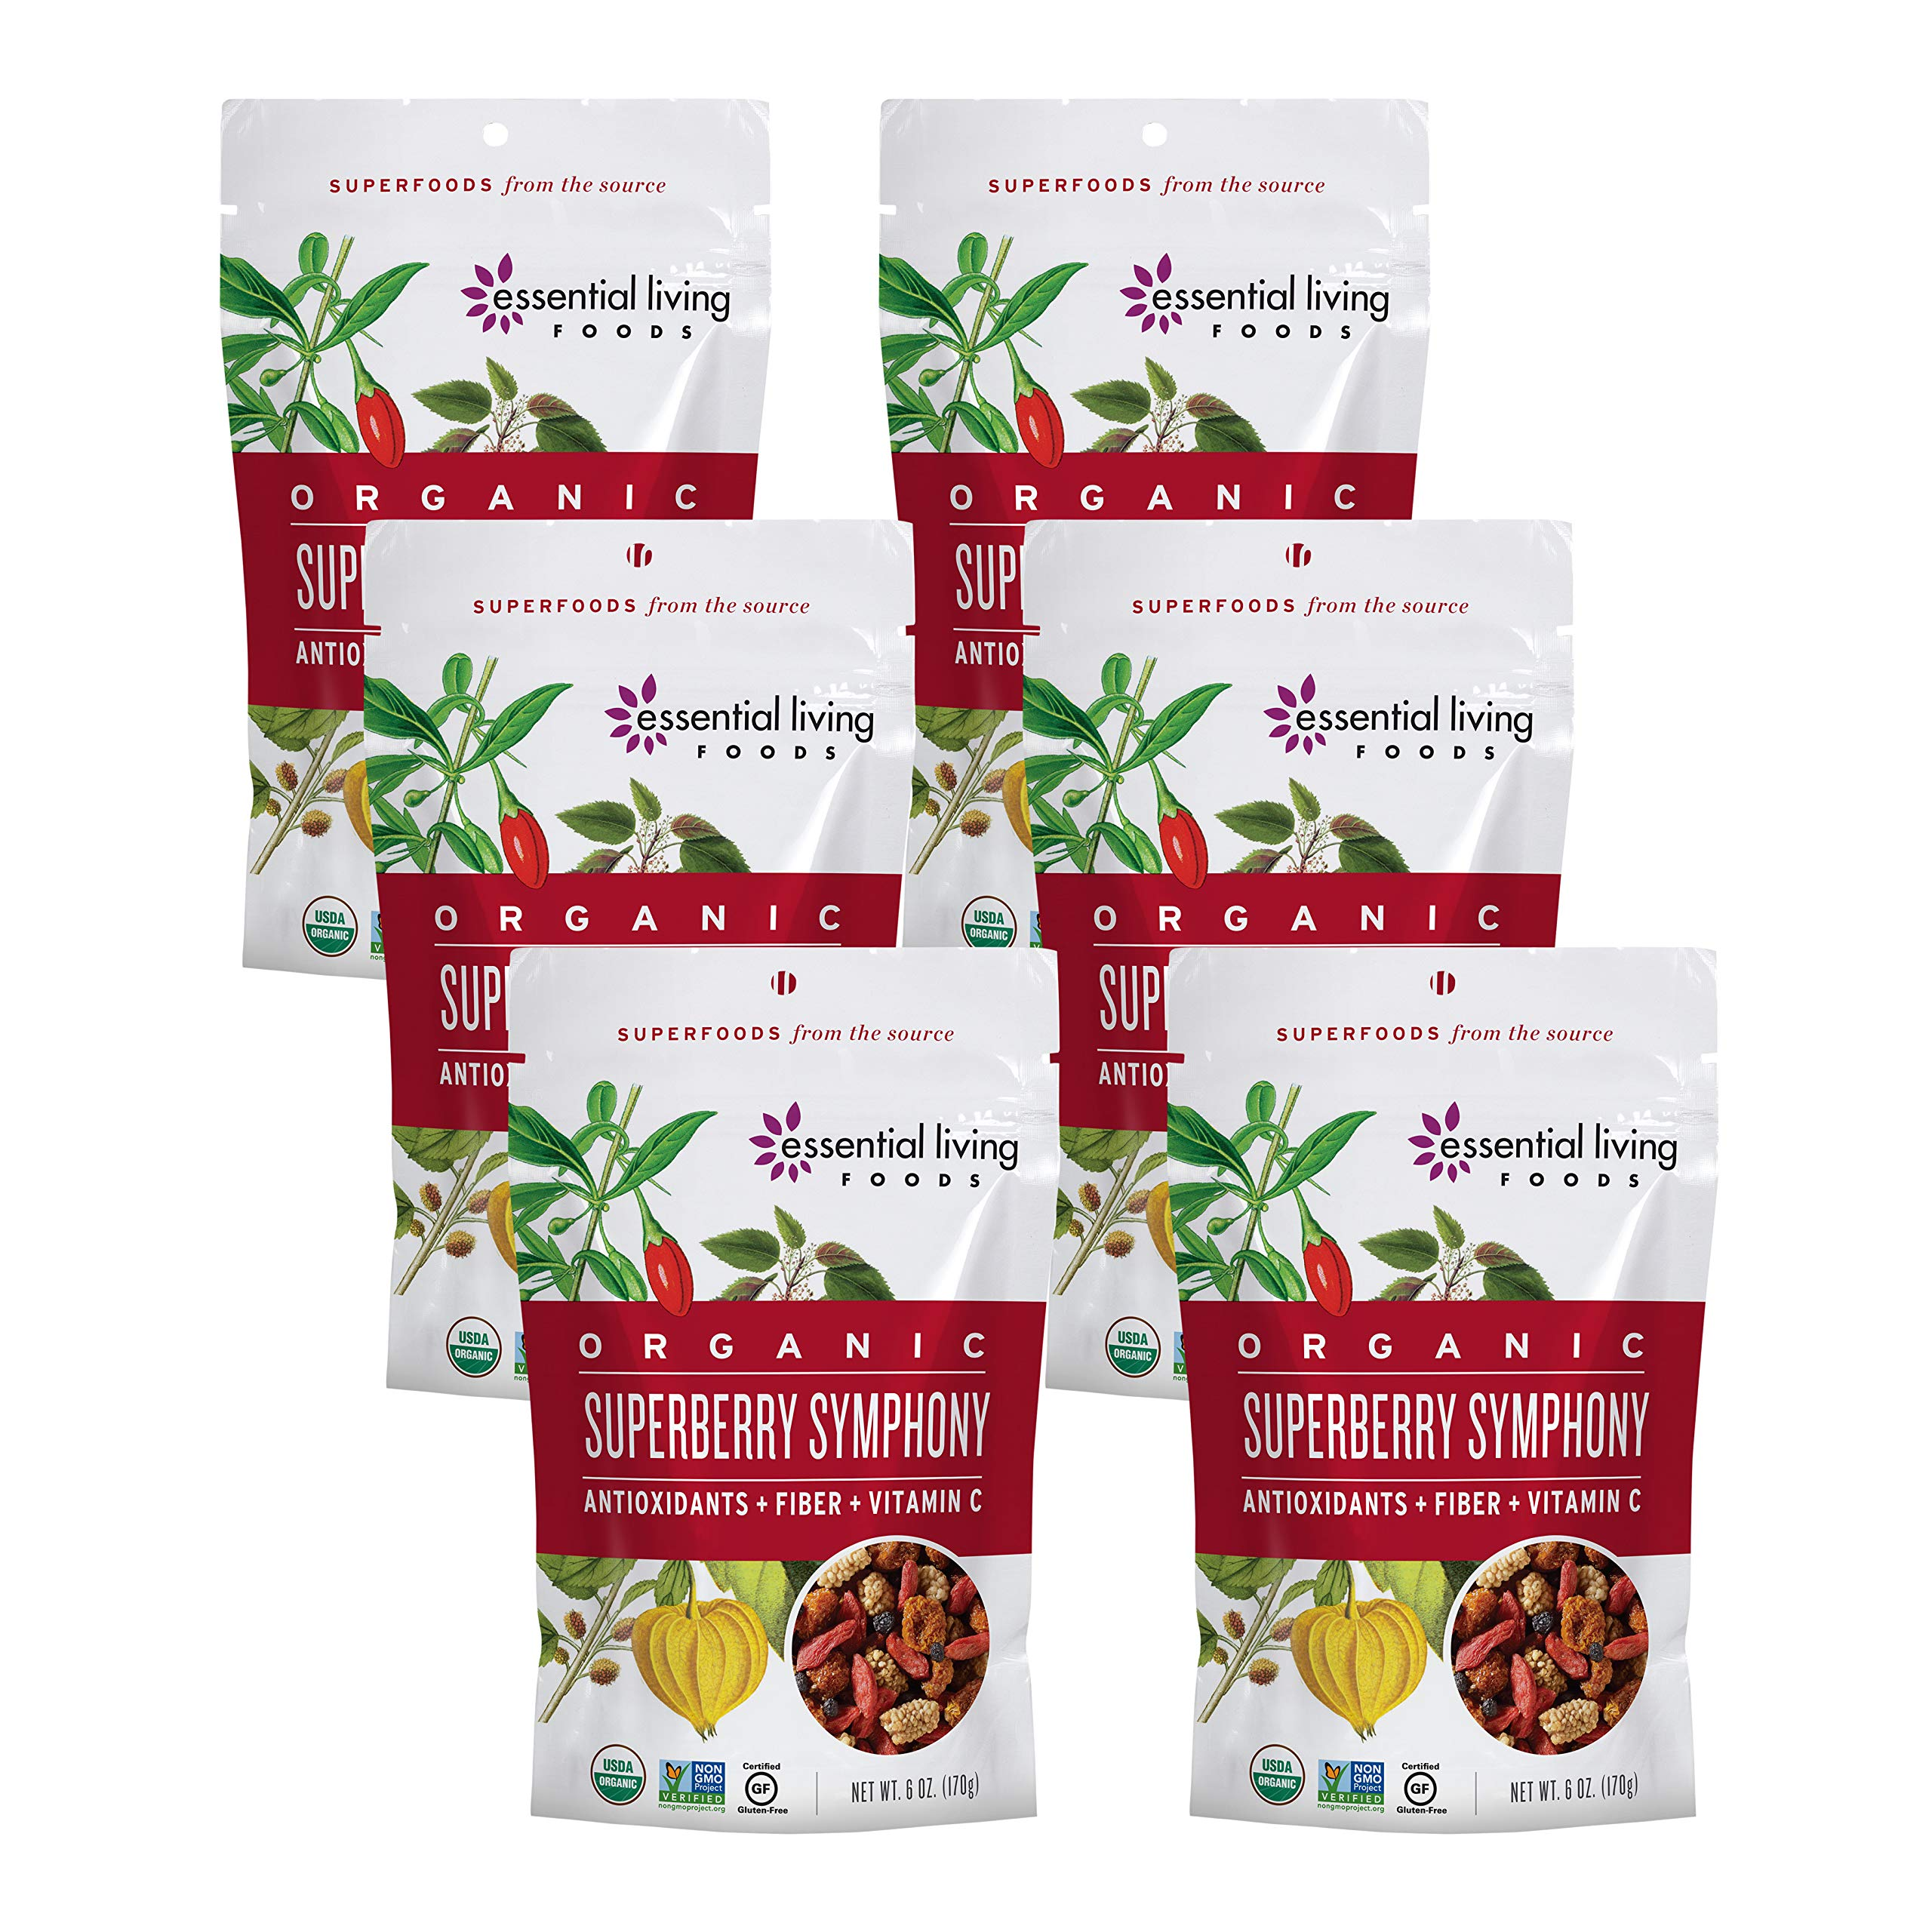 Essential Living Foods Organic Super Berry Symphony Trail Mix 6oz, 6 Pack - Vegan, Non-GMO, Gluten Free, Resealable Bags, 6 Ounce …